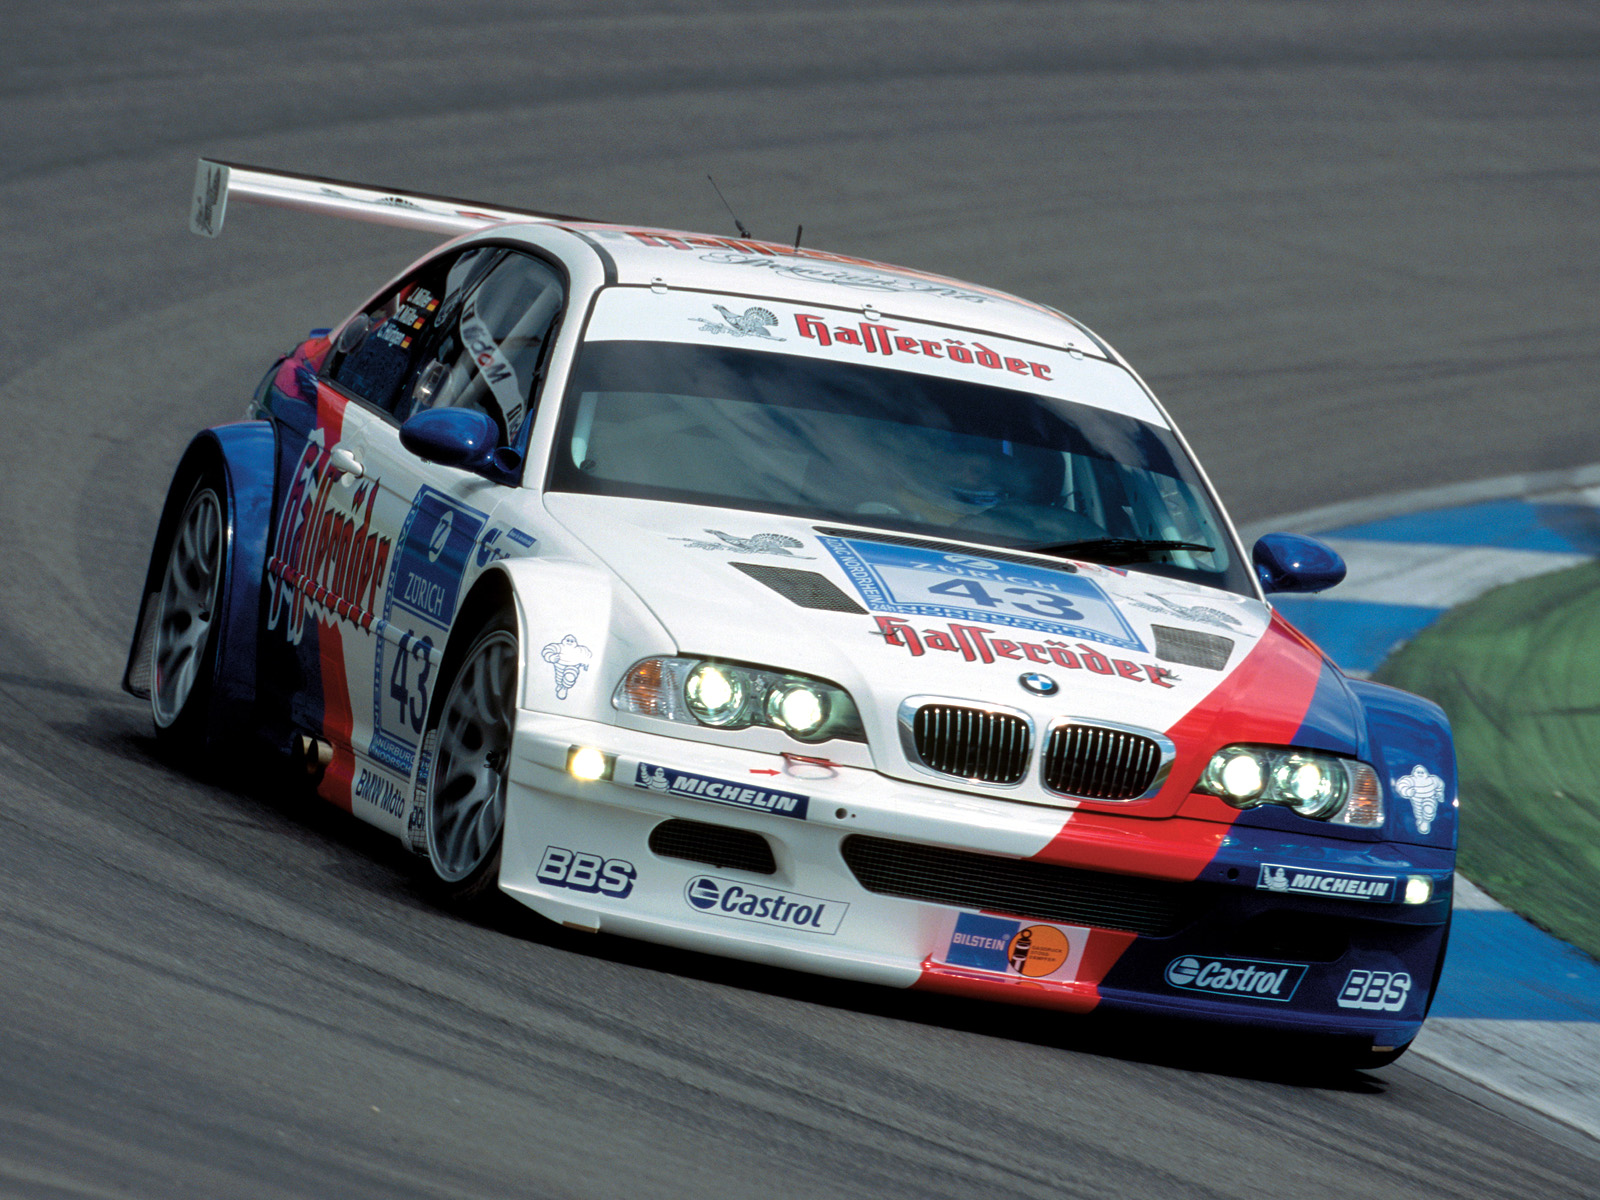 BMW M3 GTR E46 2001 Wallpaper For Android